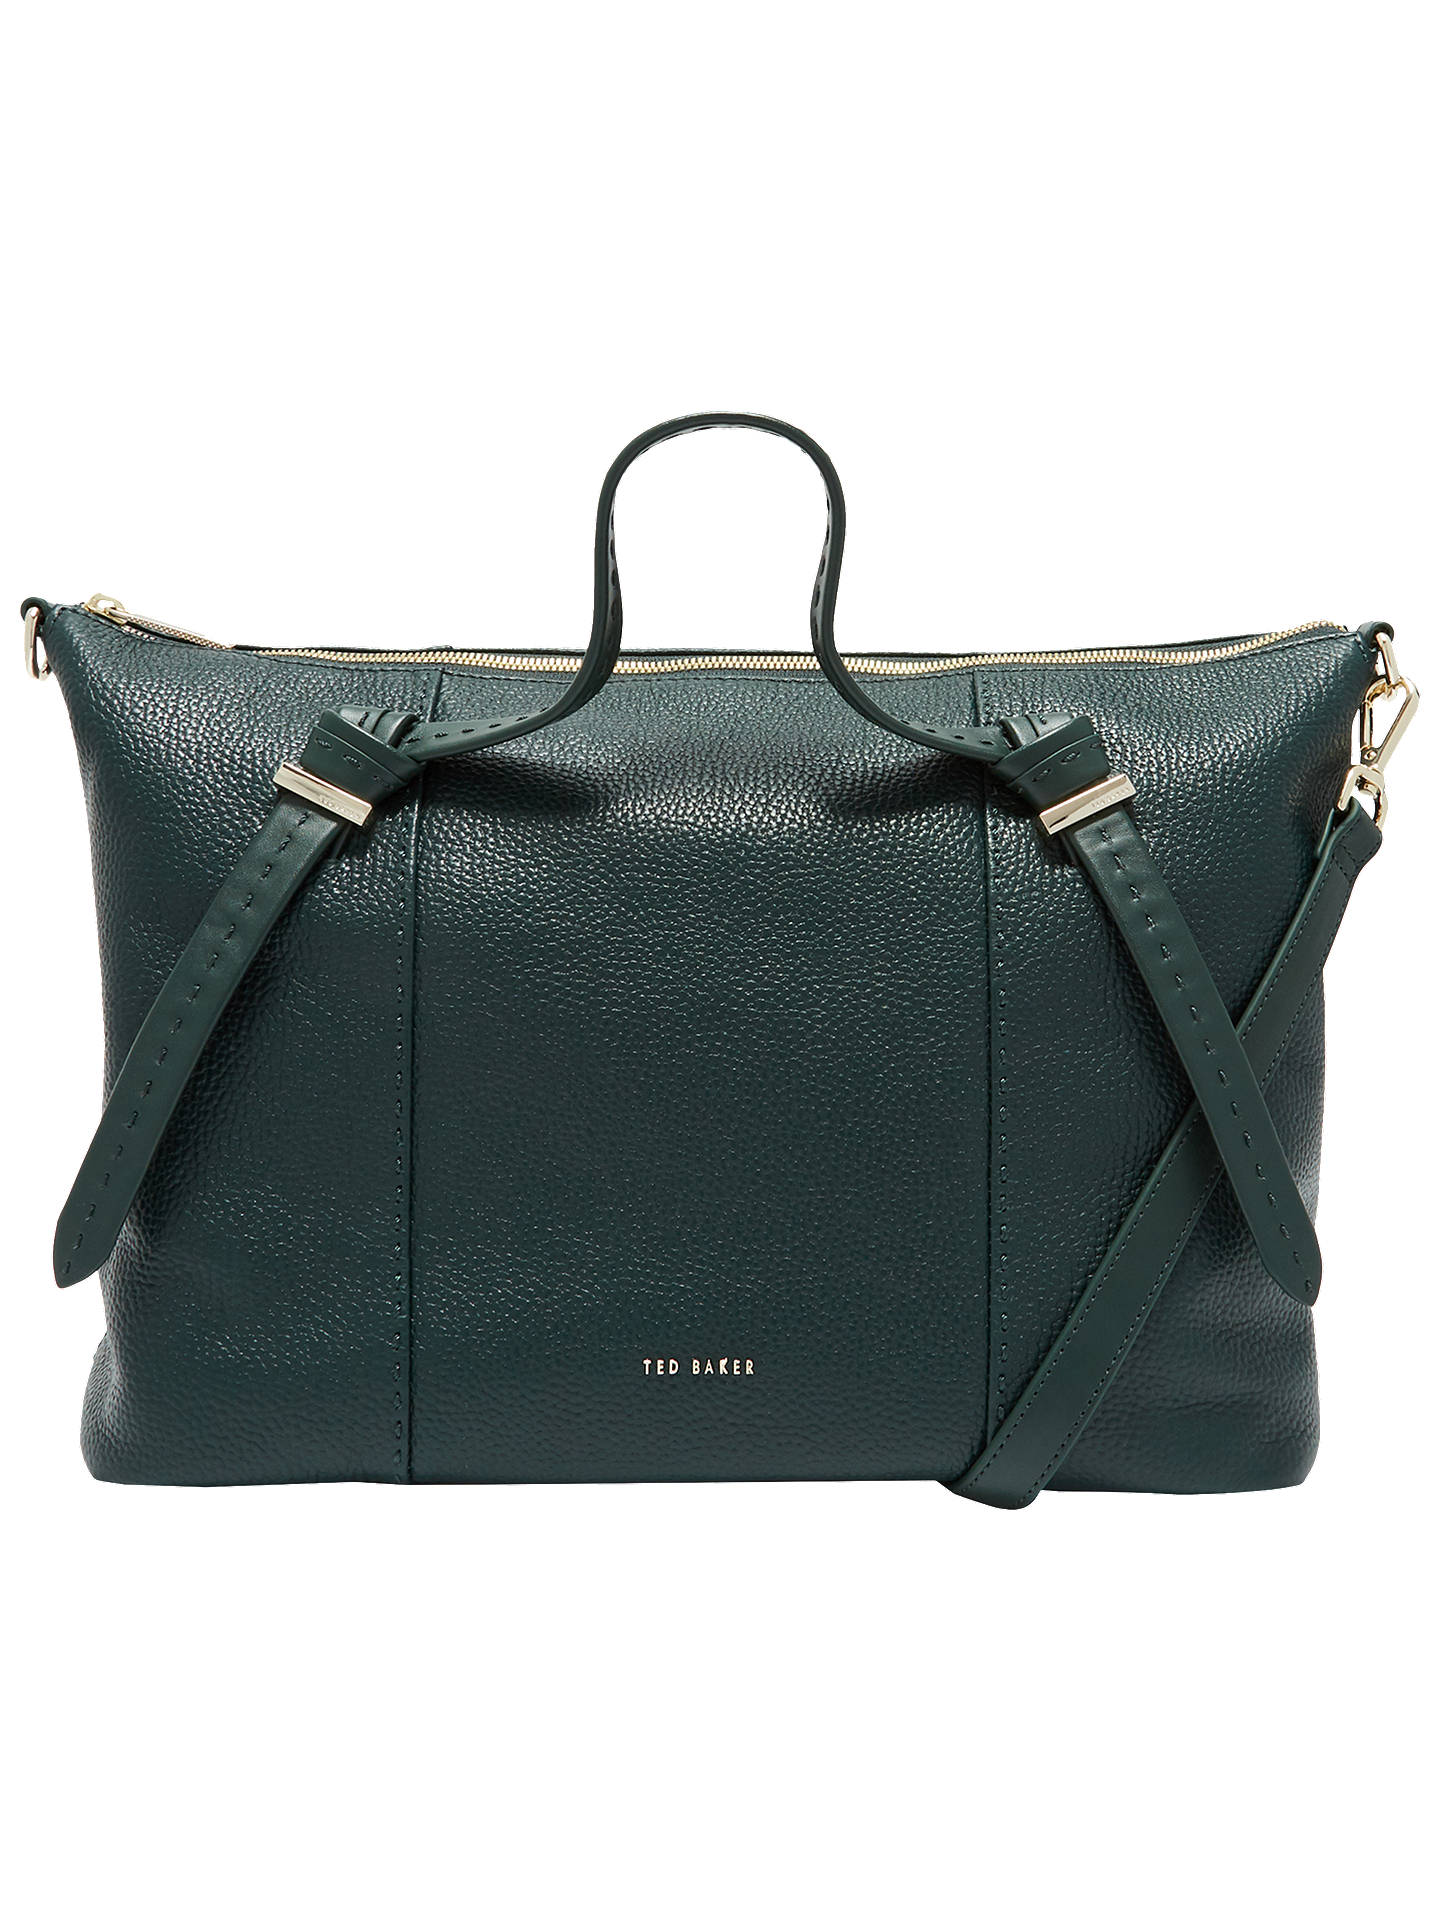 e0d3222c8d1ddd Buy Ted Baker Oellie Knotted Handle Large Leather Tote Bag